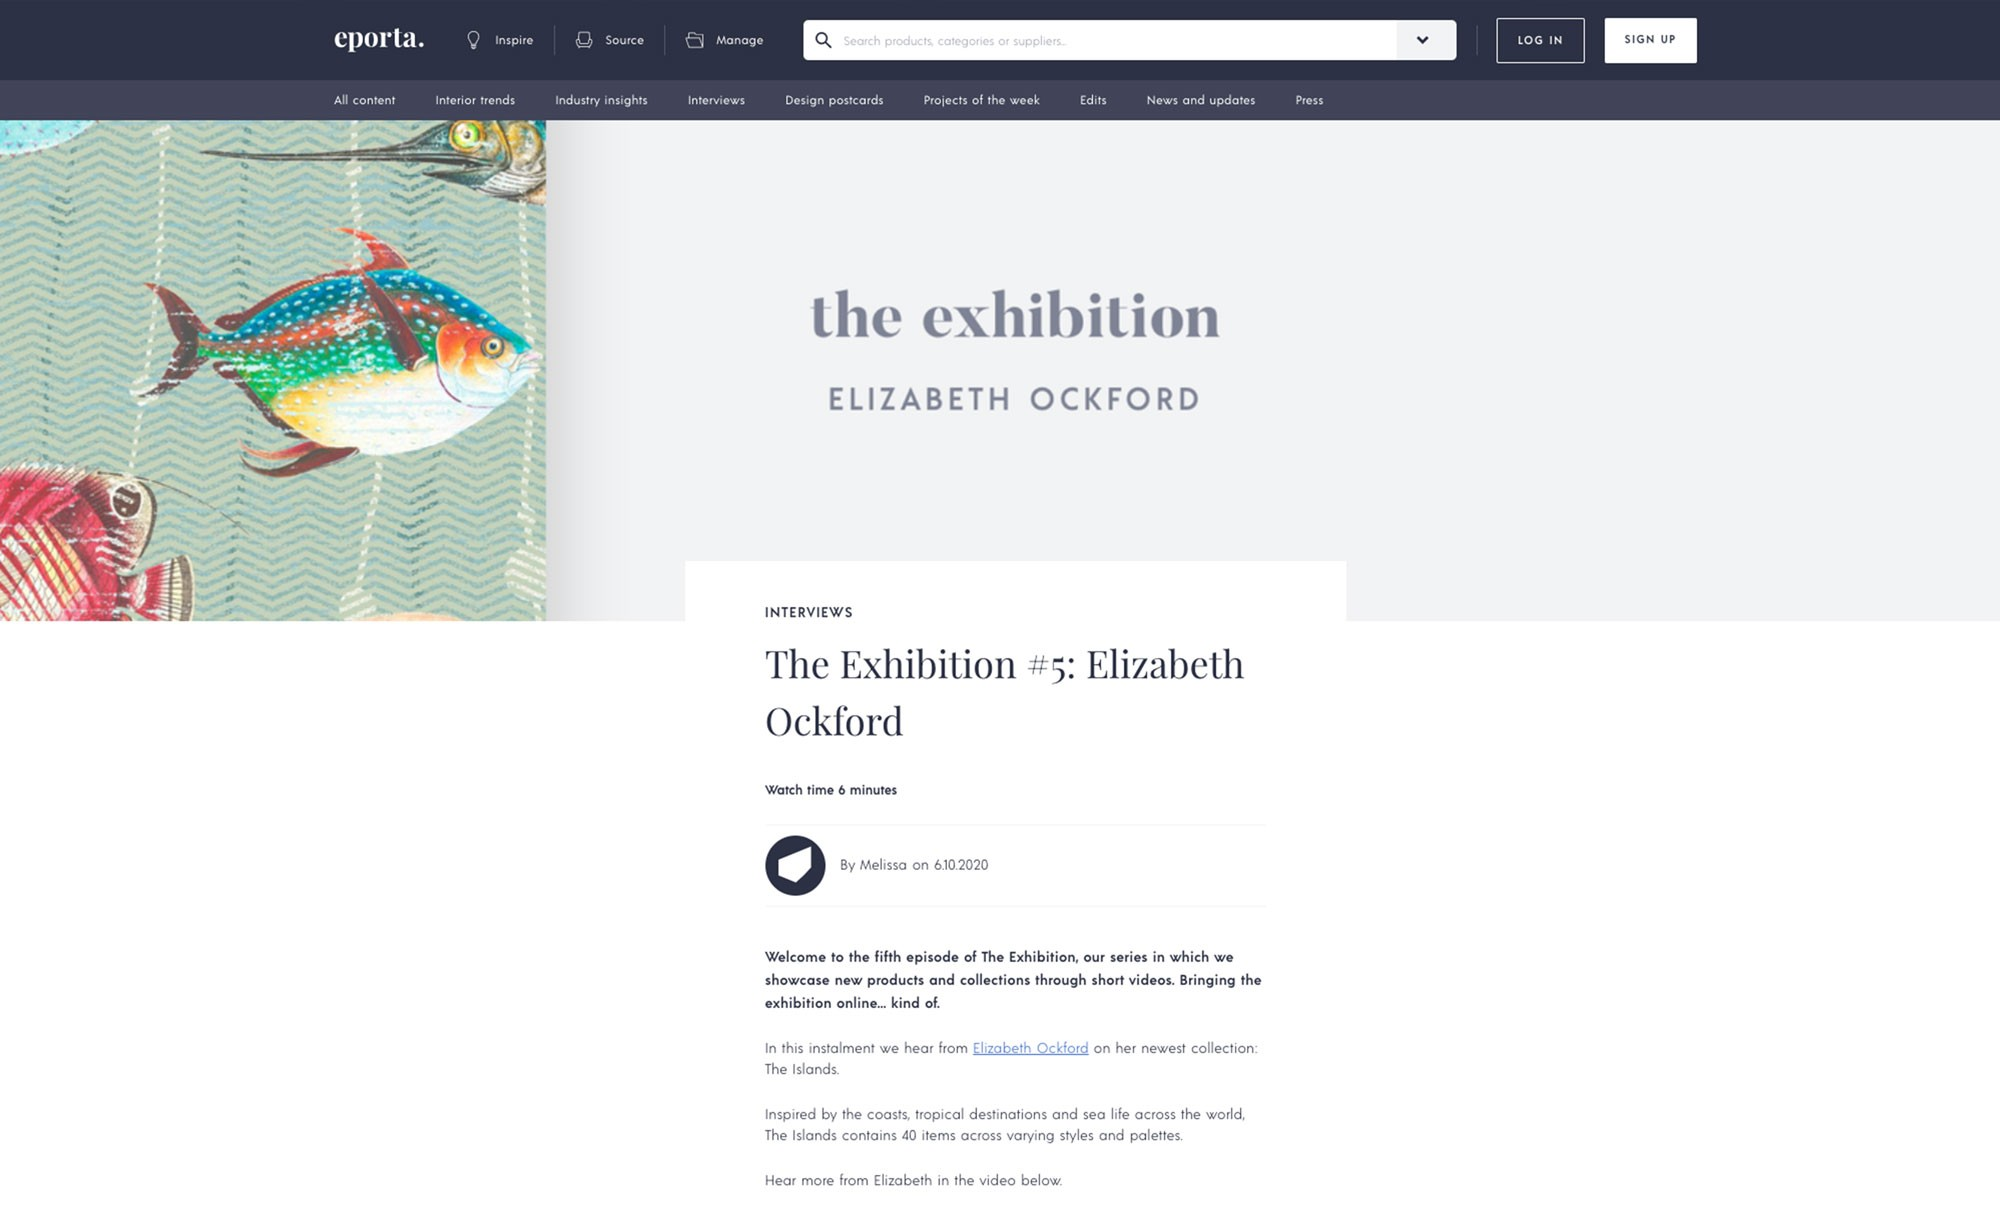 A press release of Elizabeth Ockford's wallpaper displayed in an eporta exhibition.